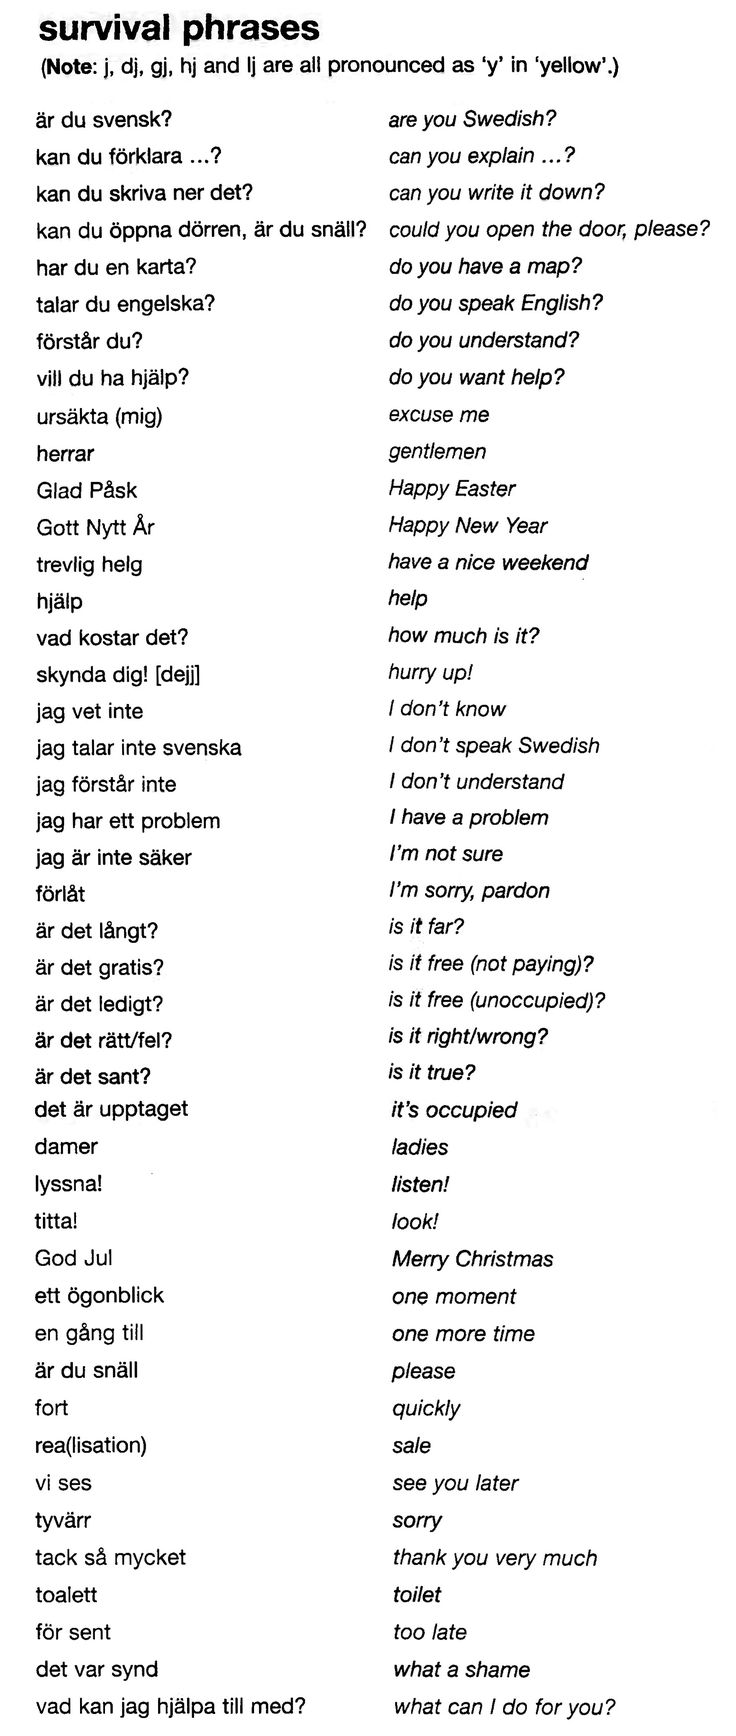 SWEDISH SURVIVAL PHRASE